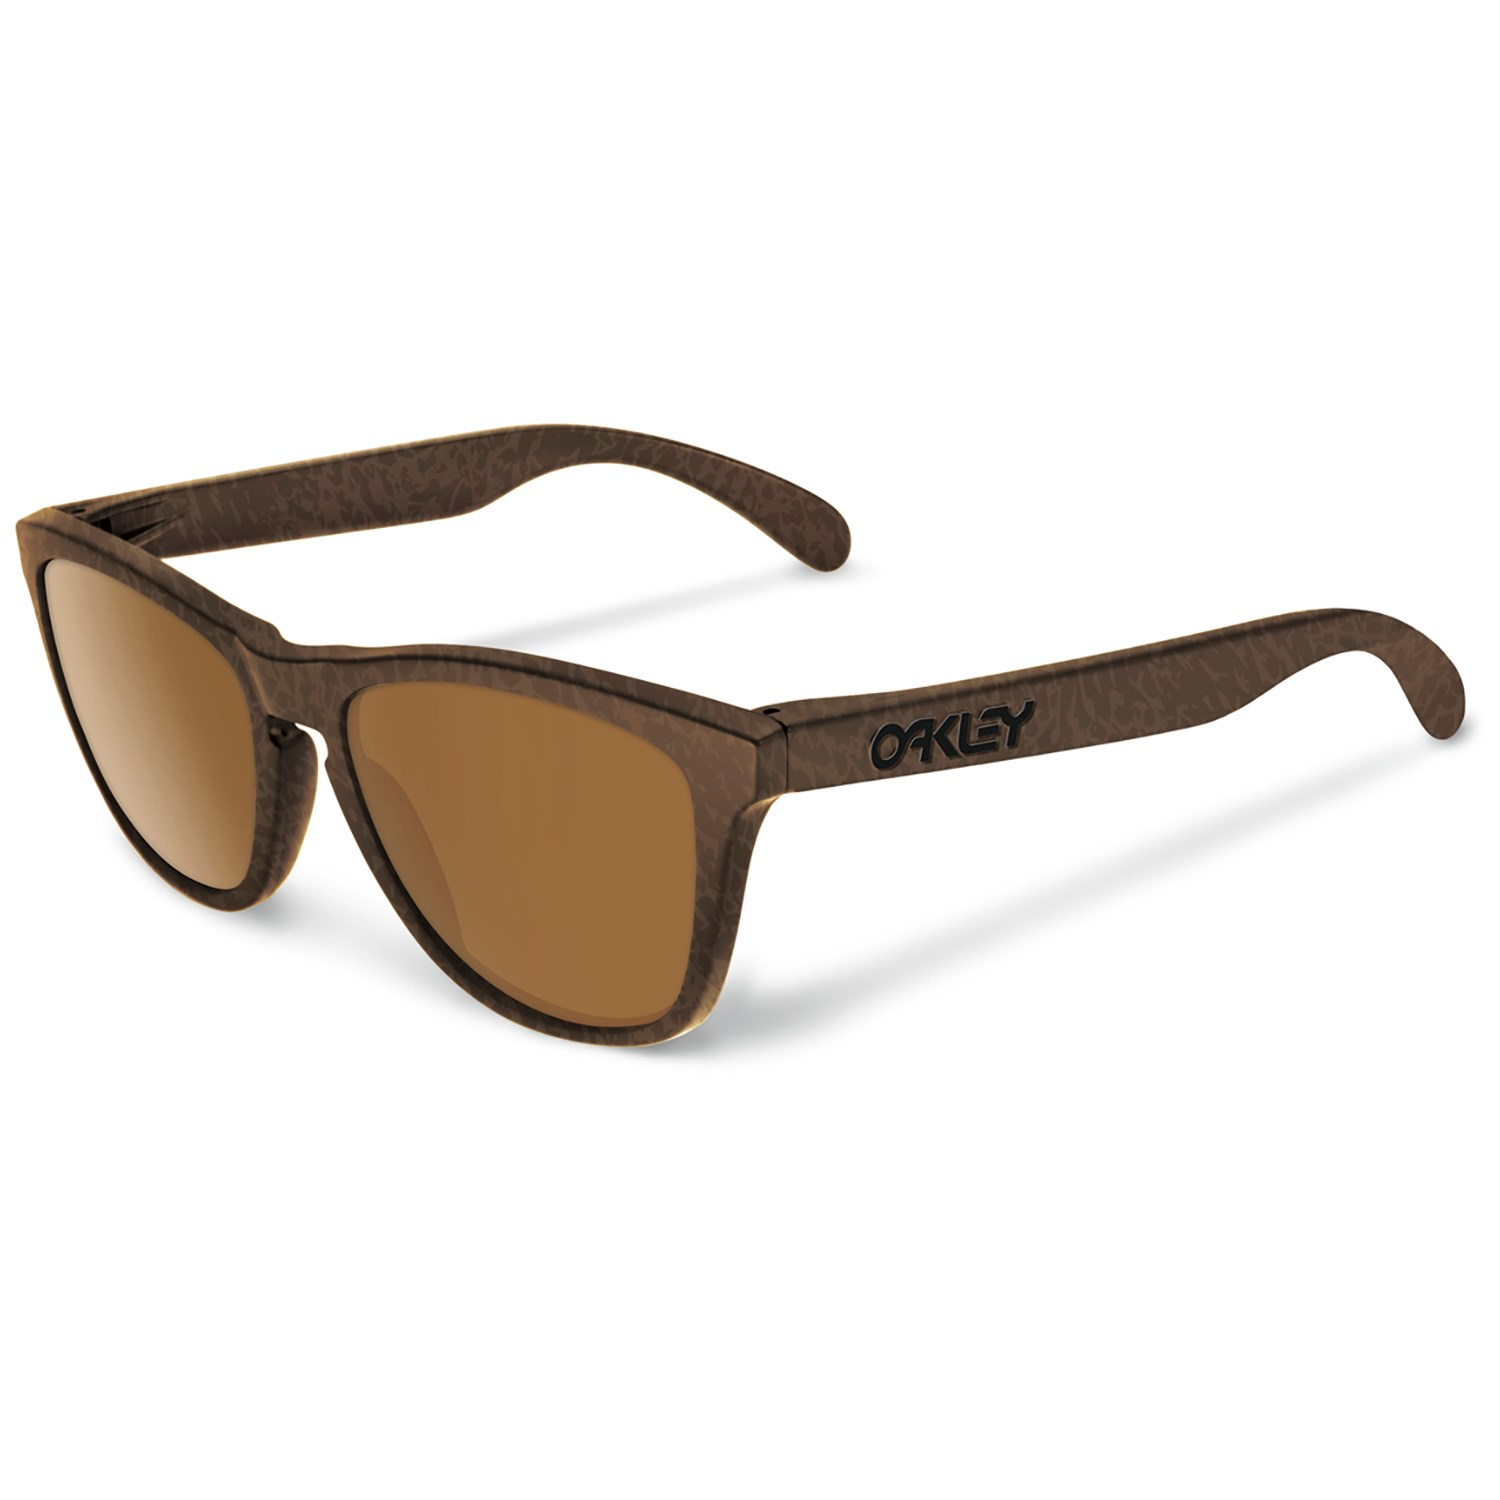 oakley sunglasses cheap review  oakley frogskins sunglasses tobacco dark bronze front